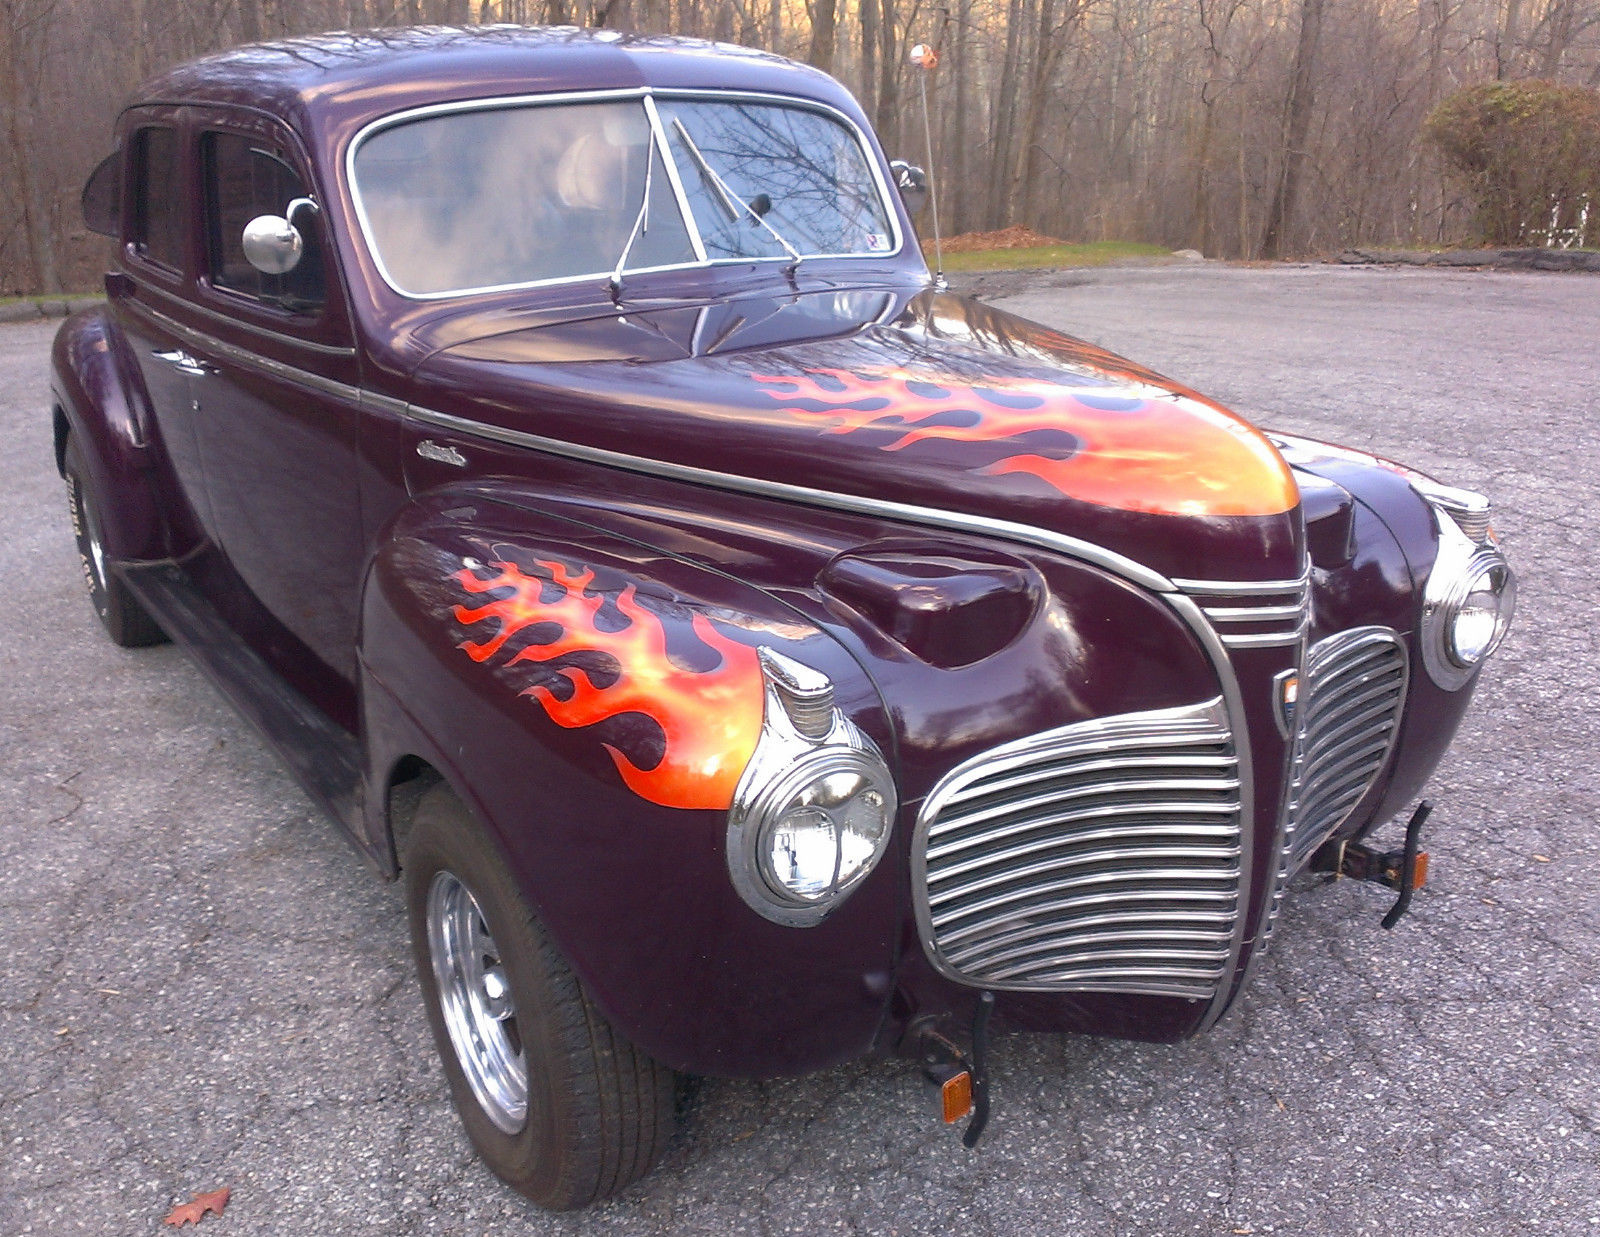 Professionally Built Restomod Plymouth 5k On Build All New Not 1941 Deluxe 2 Door Dodge Chrysler